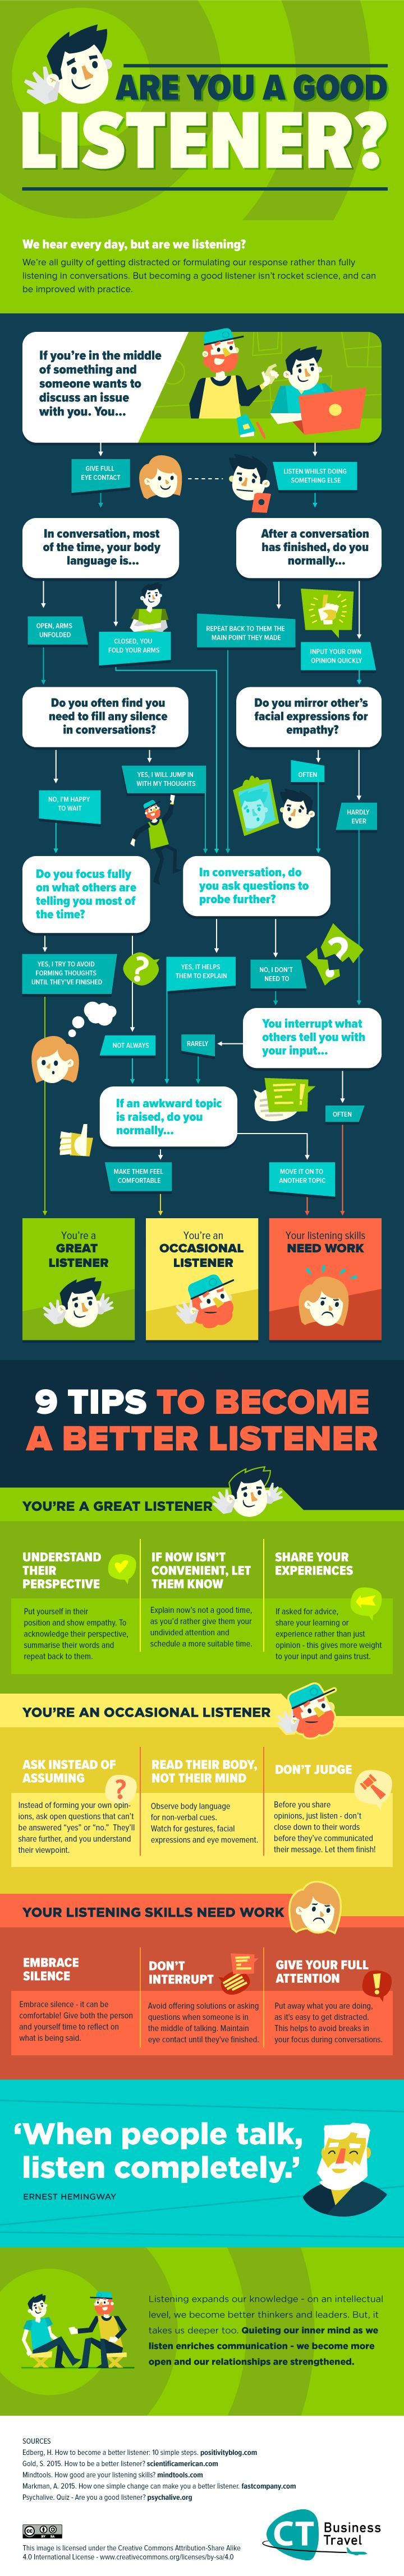 I'm adding this infographic to The Best Ideas To Help Students Become Better Listeners — Contribute More: You can also find more infographics at Visualistan